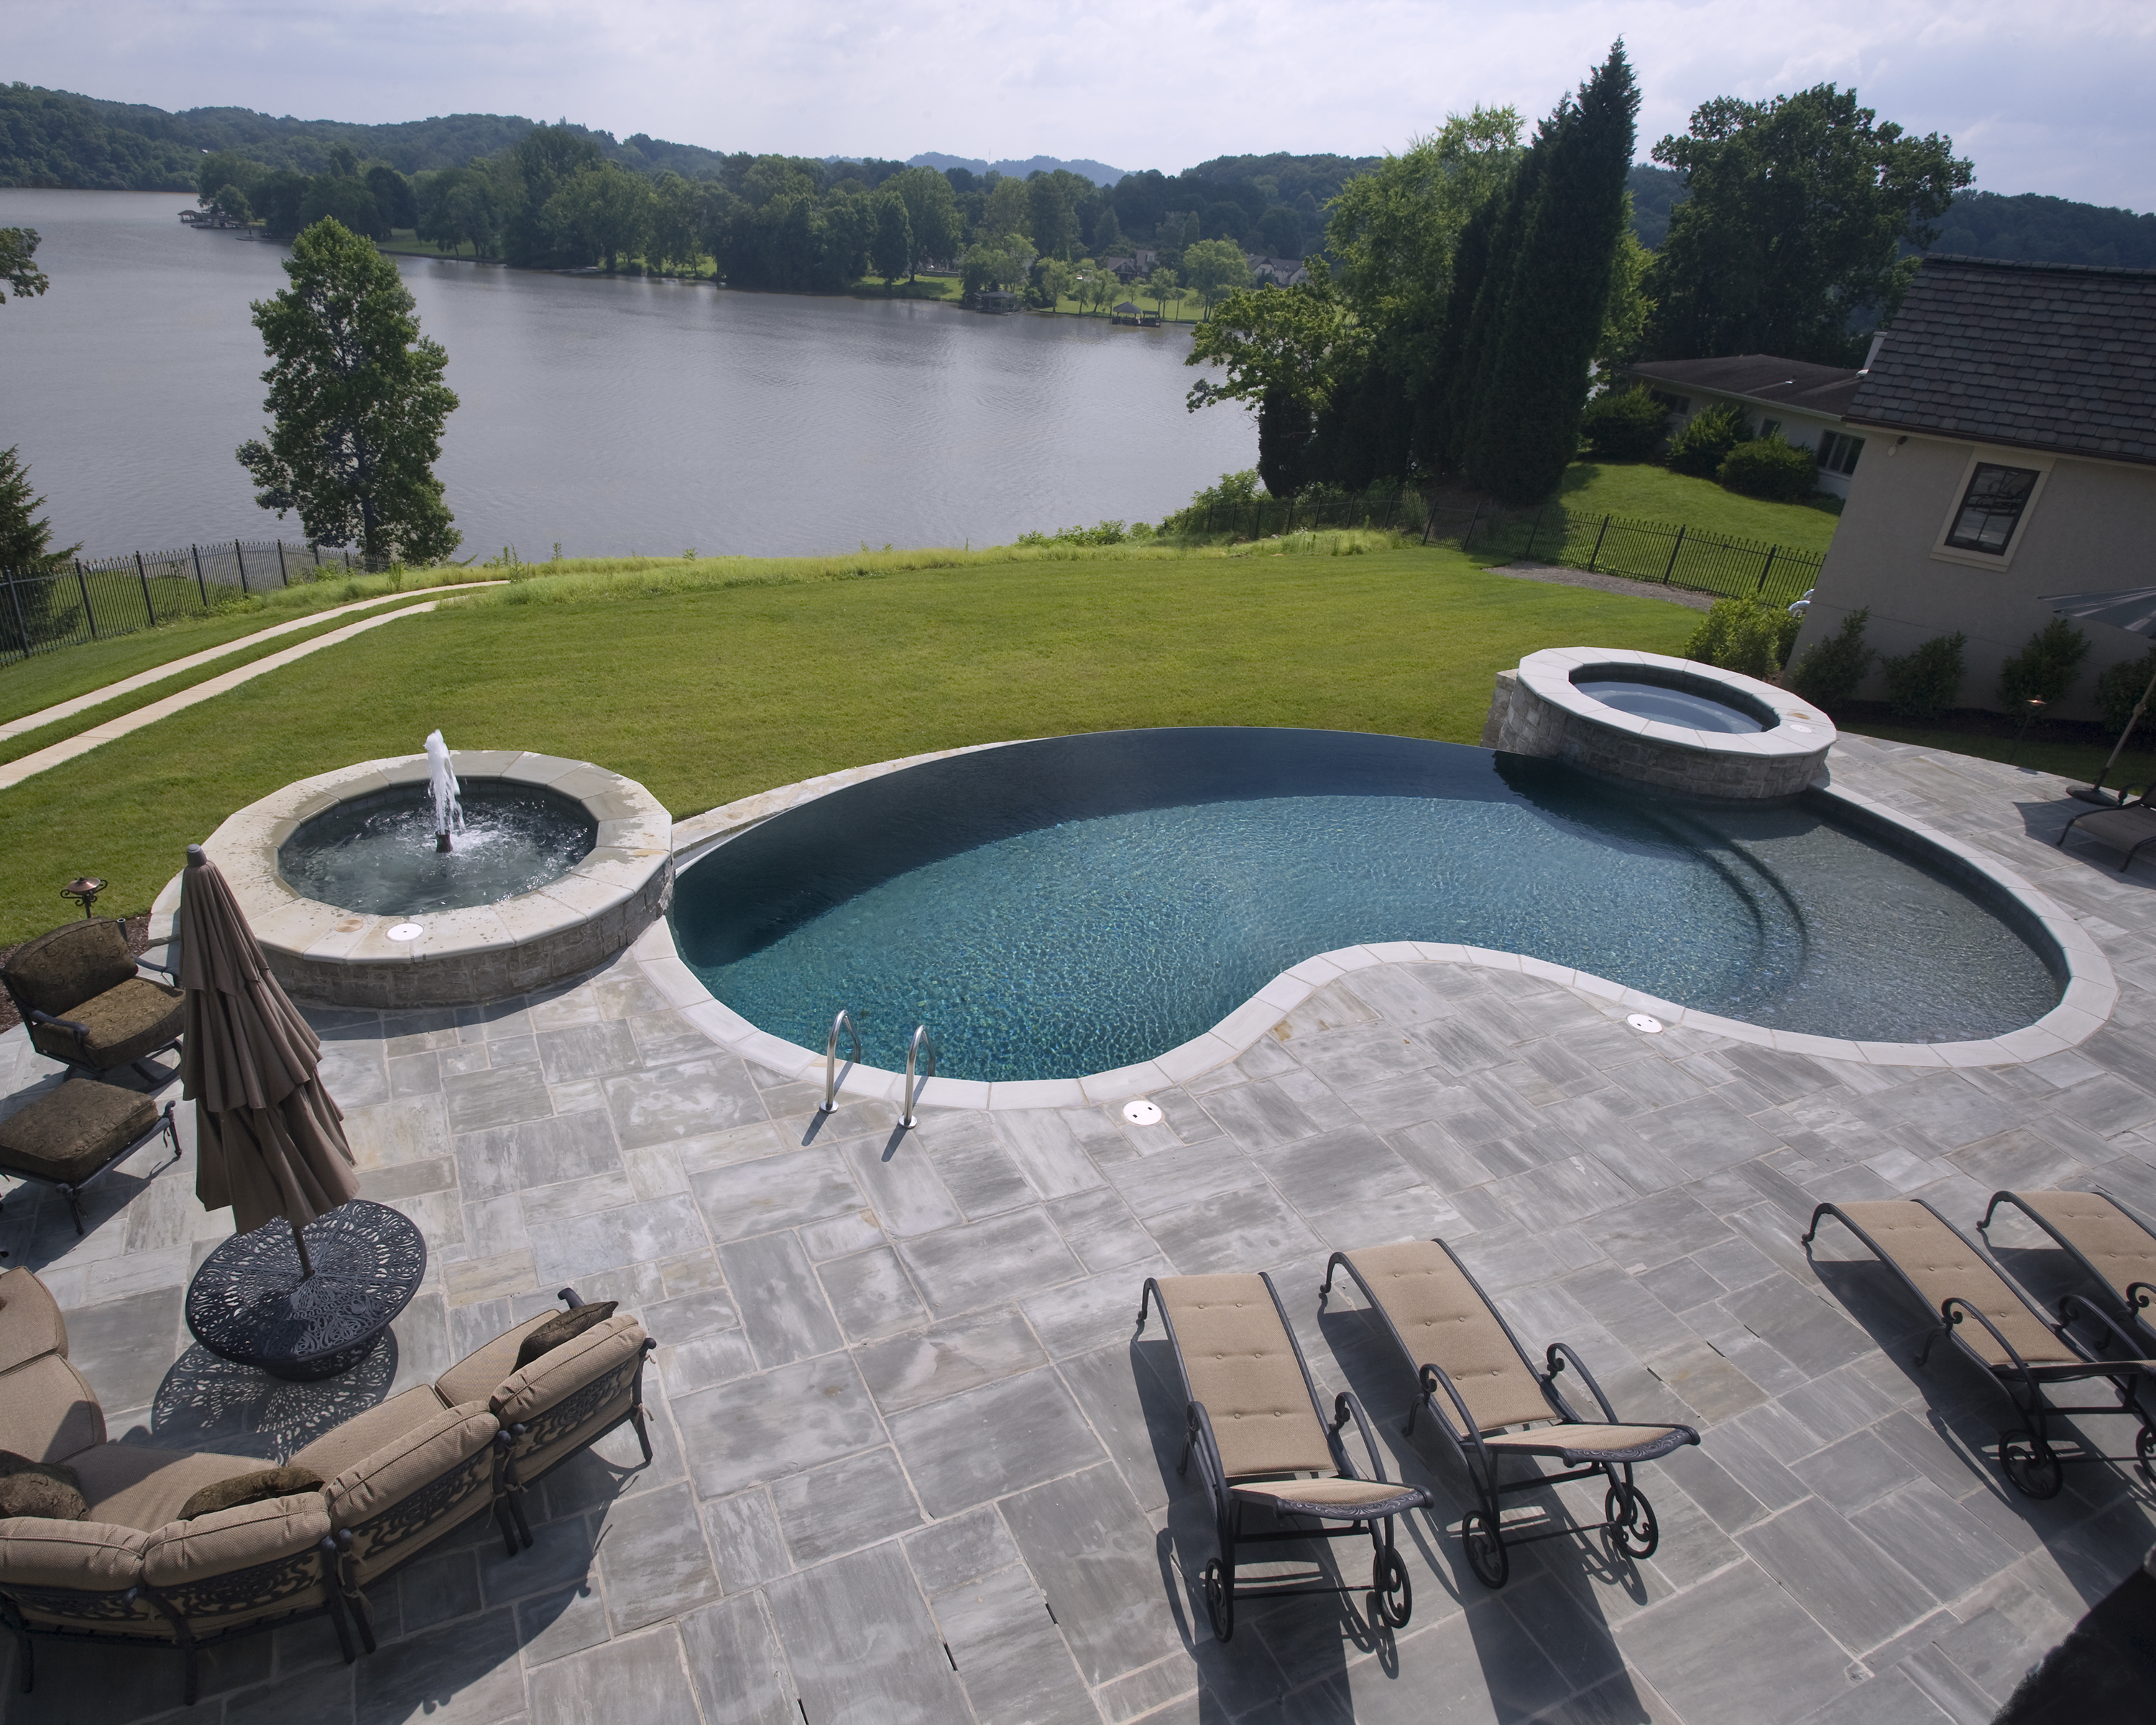 Pool landscaping planning trees for your pool for Pool design knoxville tn